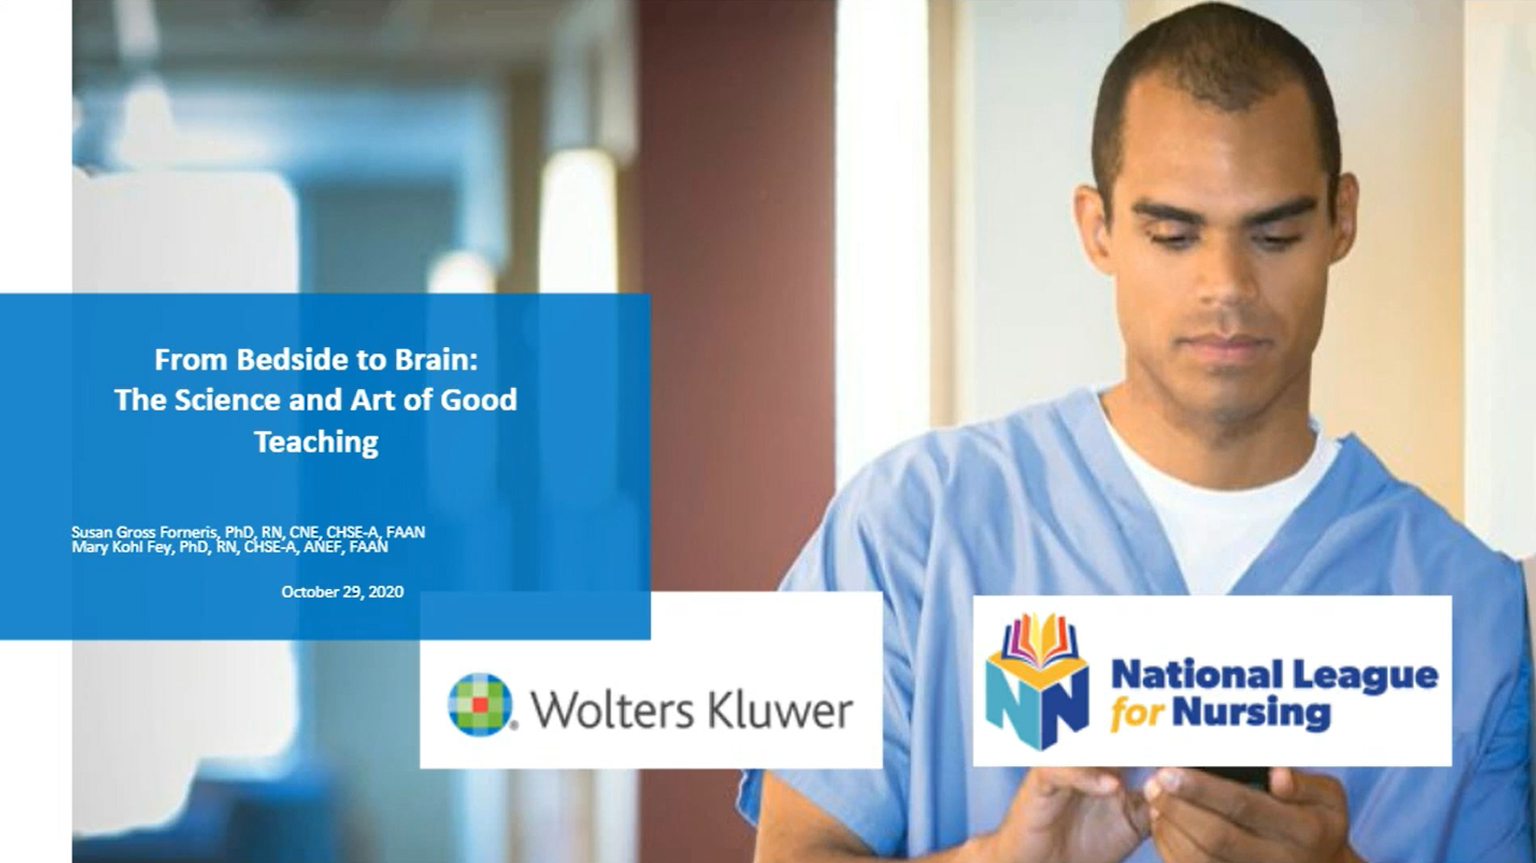 Screenshot of From bedside to brain: Science and art of good teaching video